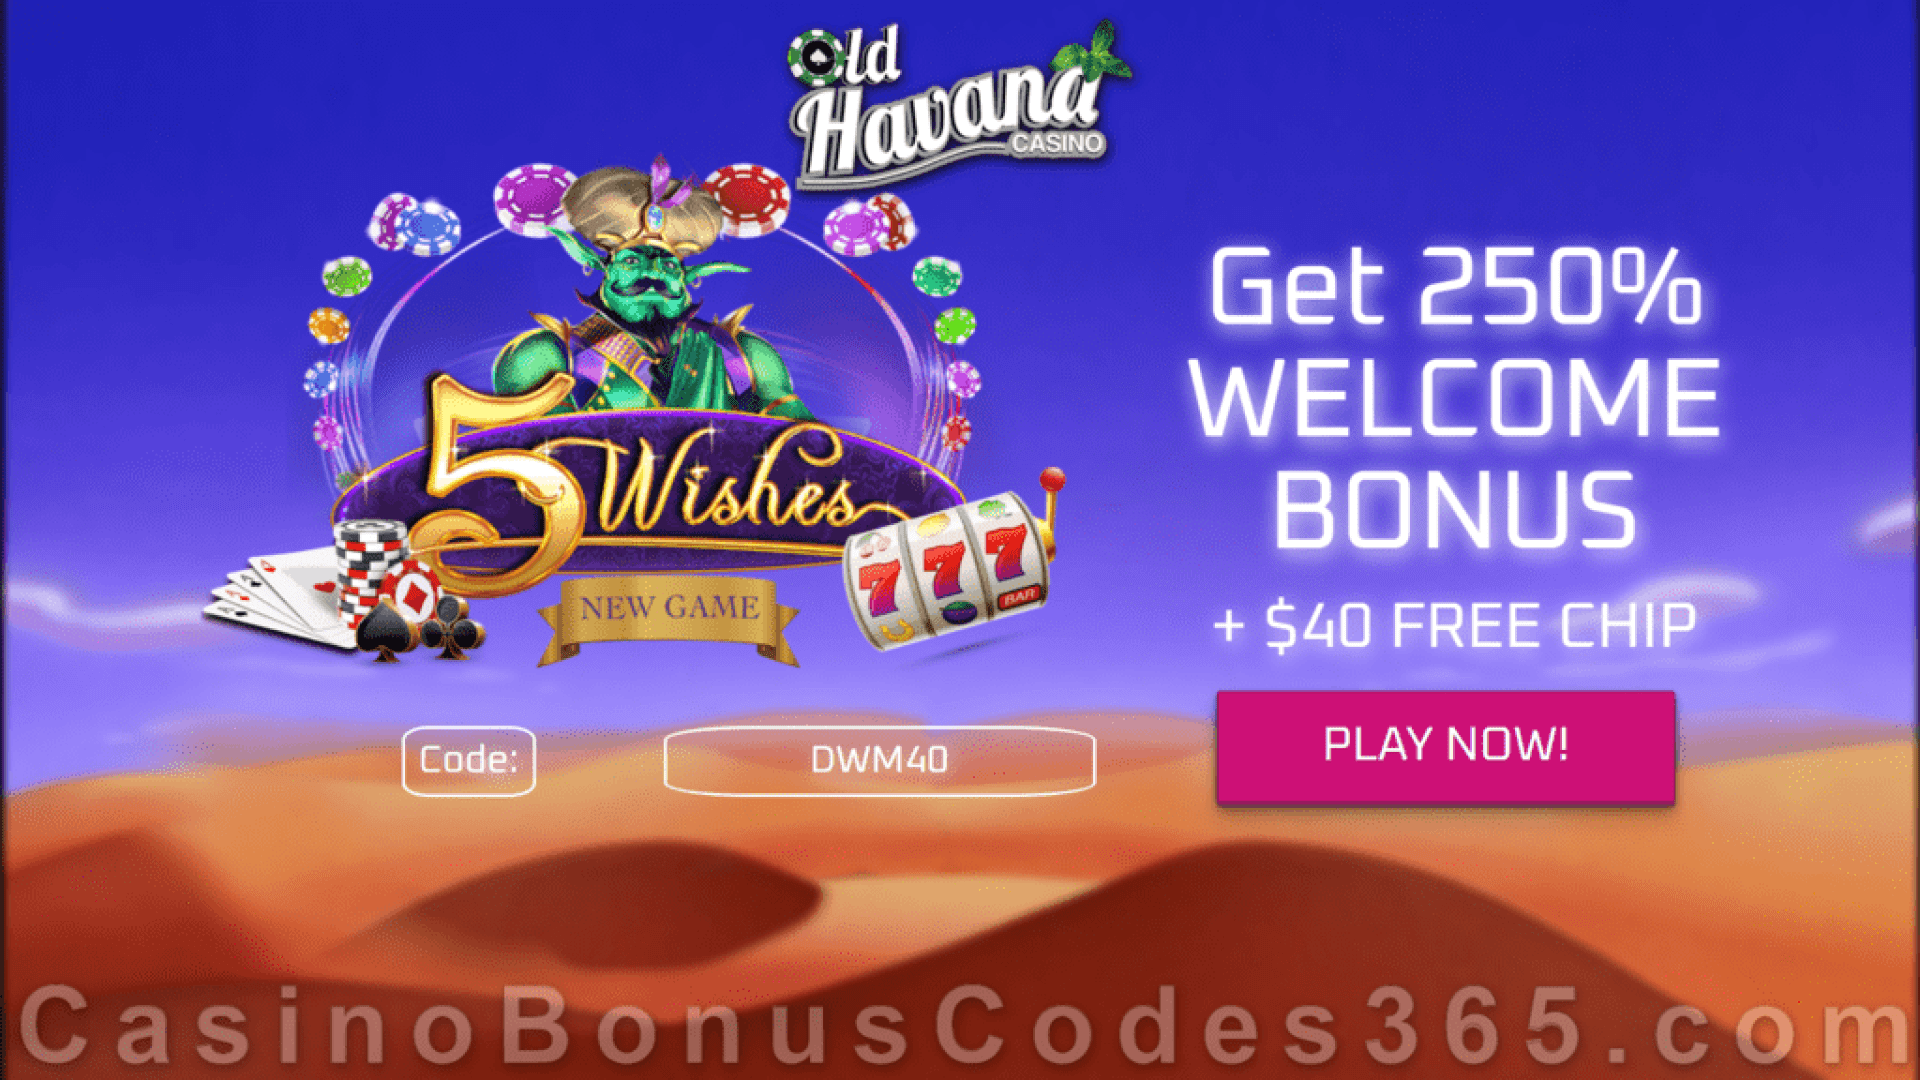 Old Havana Casino $40 FREE Chip Special No Deposit Bonus RTG 5 Wishes